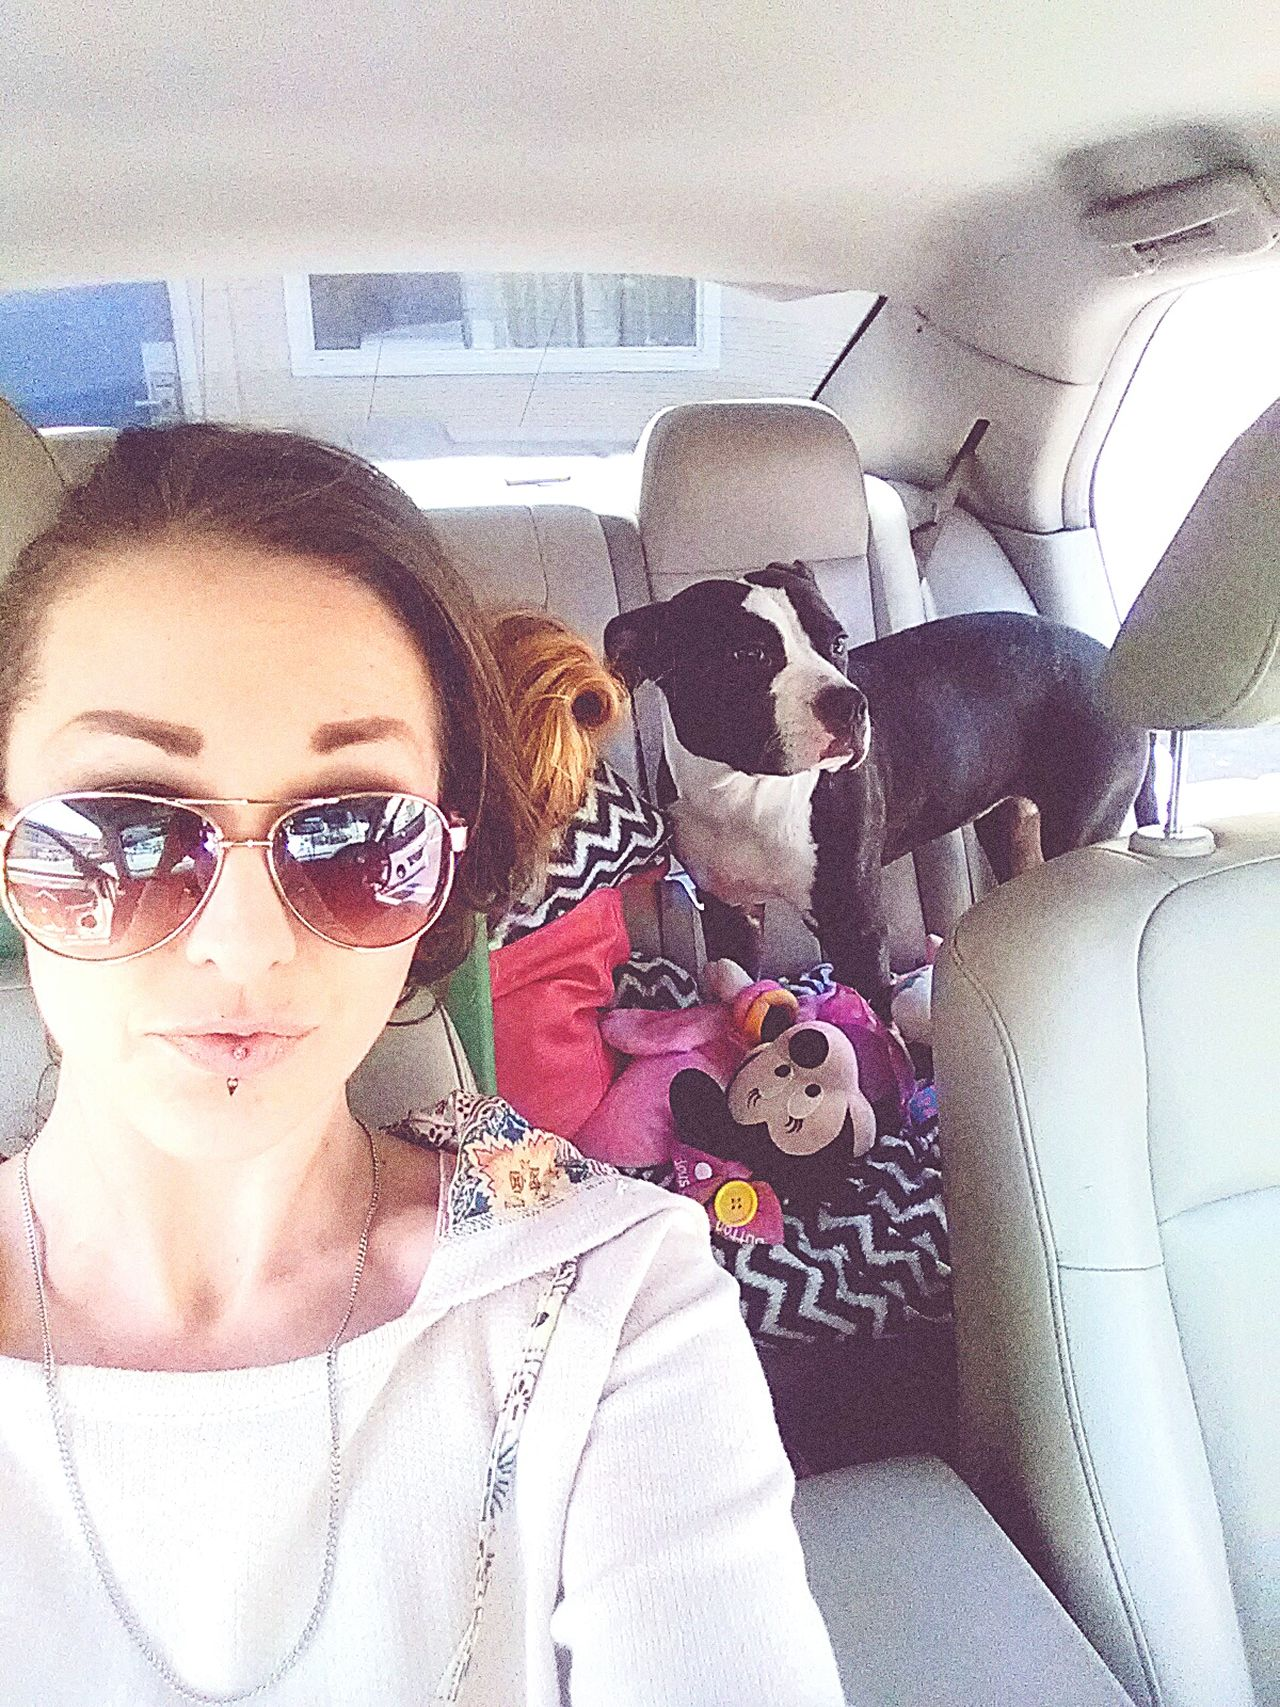 PitBullNation Pitbull Life Style RoadDog Lovabull Don't Bully My Breed Gangster Of Love Beautiful Woman Beautiful People LoveLife❤️ Sexygirl Audrey XO Real People Beauty Lovely Girl White Girl Swag Enjoying Life White Girls So Cal Dog Portrait Sunglasses Happiness